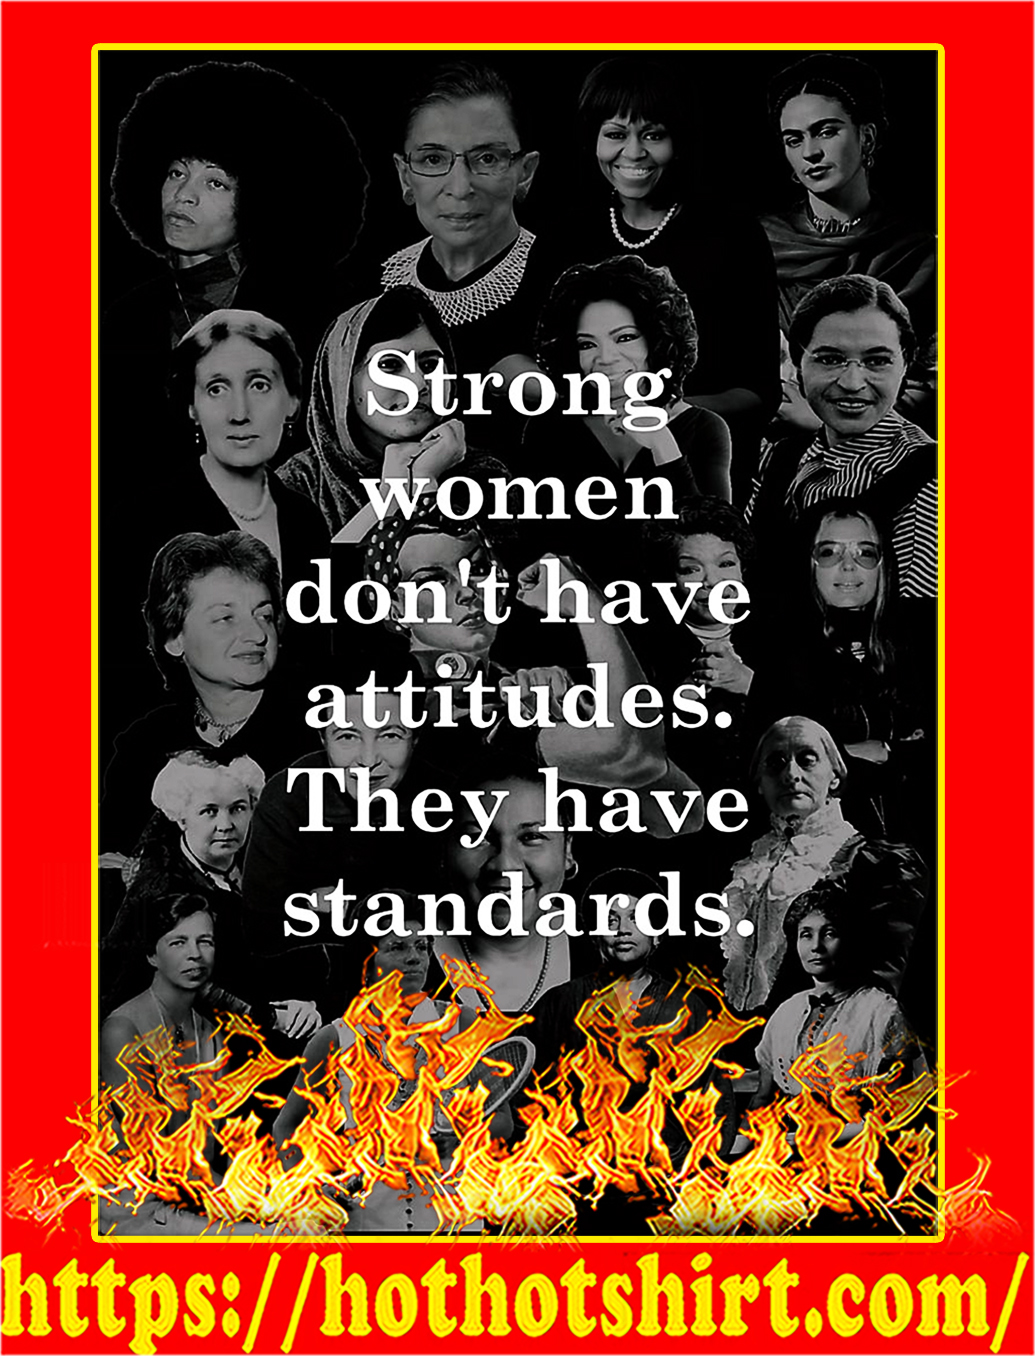 Strong women don't have attitude they have standards poster - A3